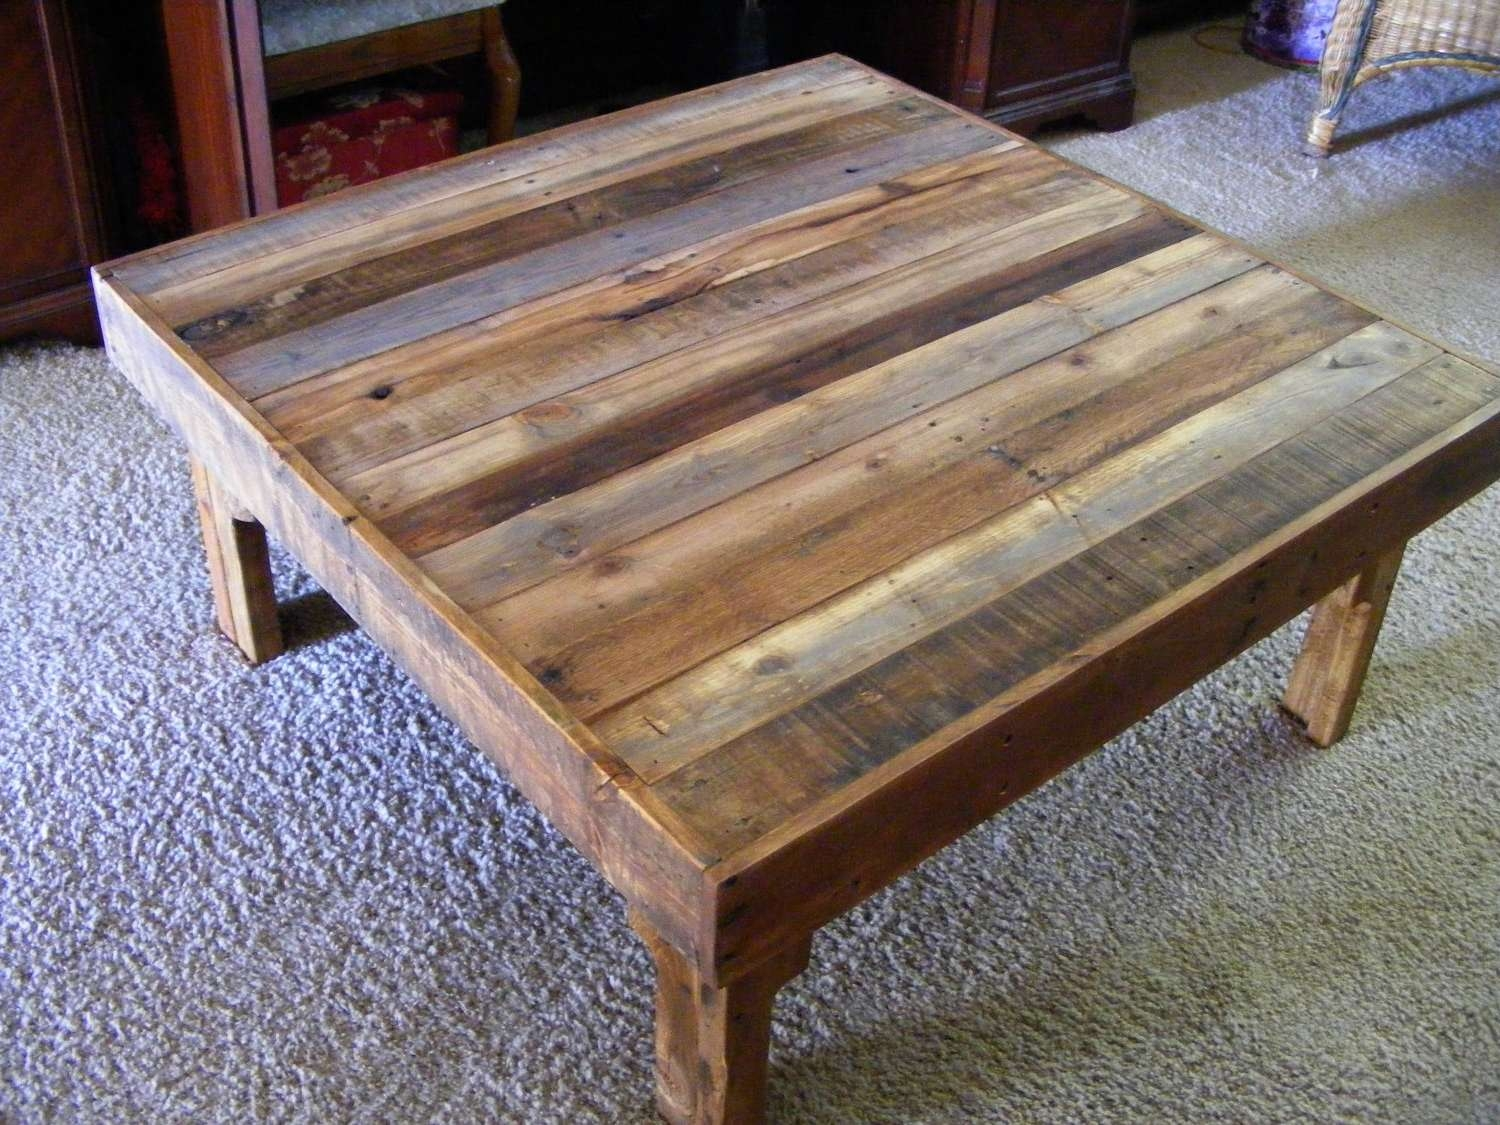 Famous Rustic Square Coffee Table With Storage Throughout Coffee Tables : Astonishing Pretty Rustic Coffee Tables Wood Table (View 10 of 20)